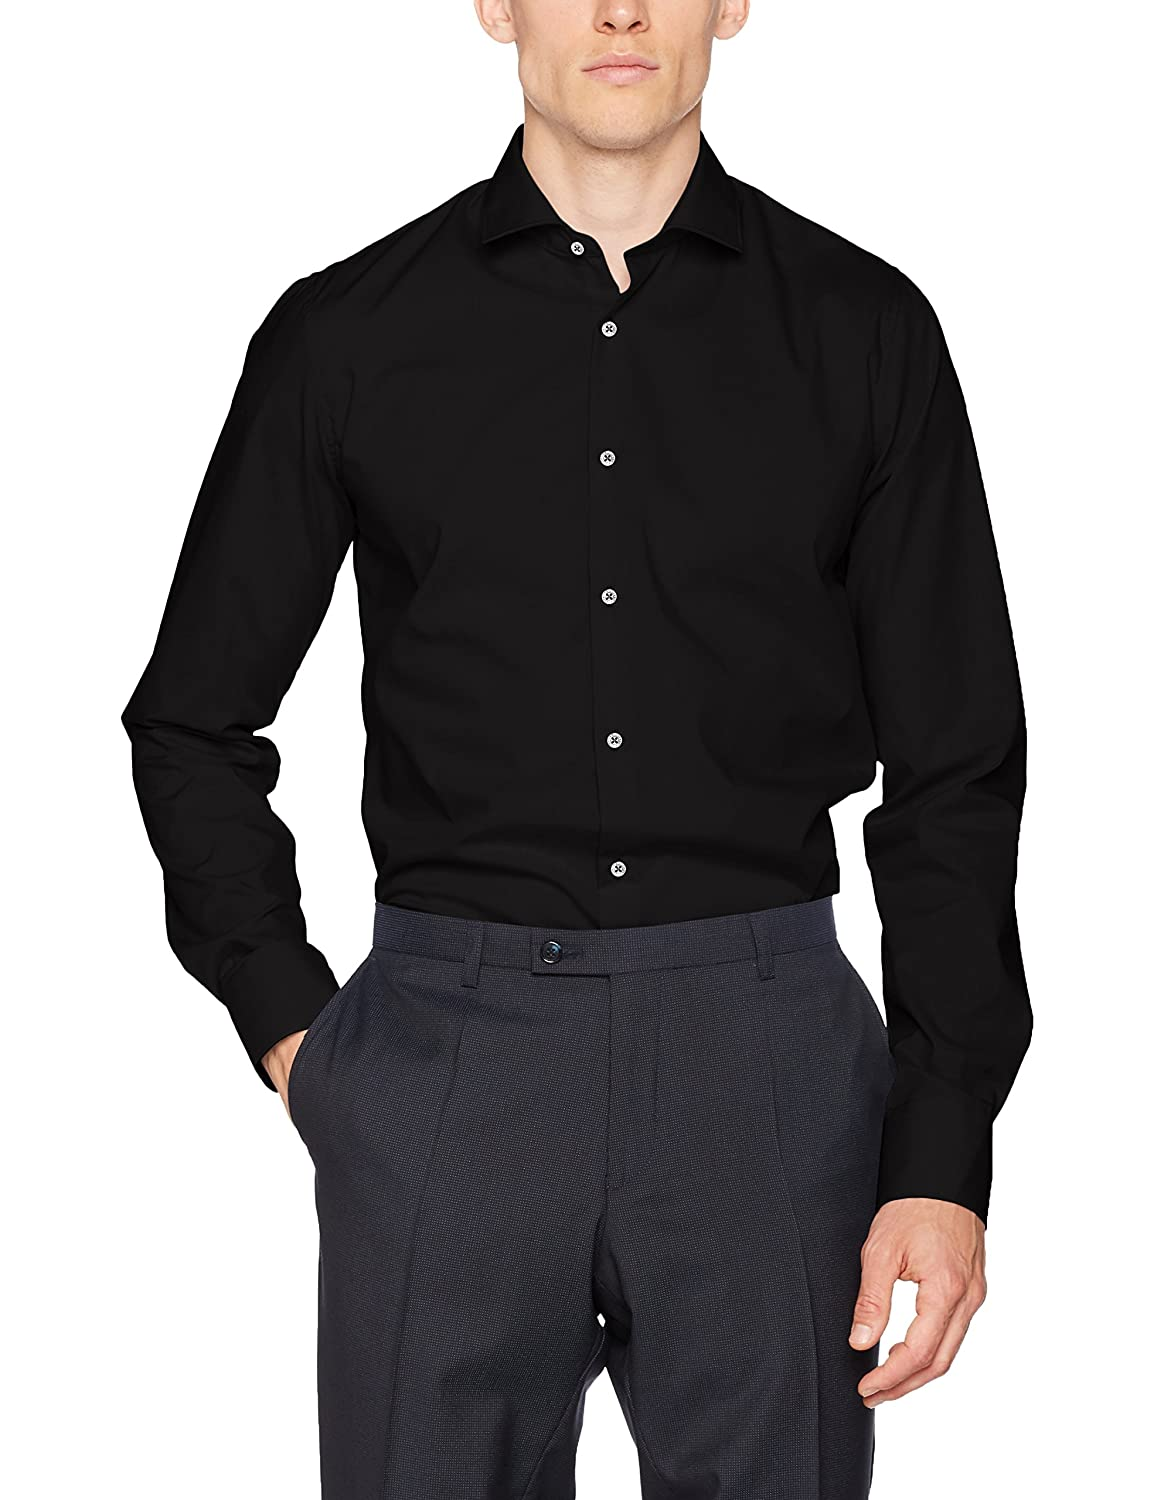 Club of Gents CG Slim-Chris, Camisa de Oficina para Hombre